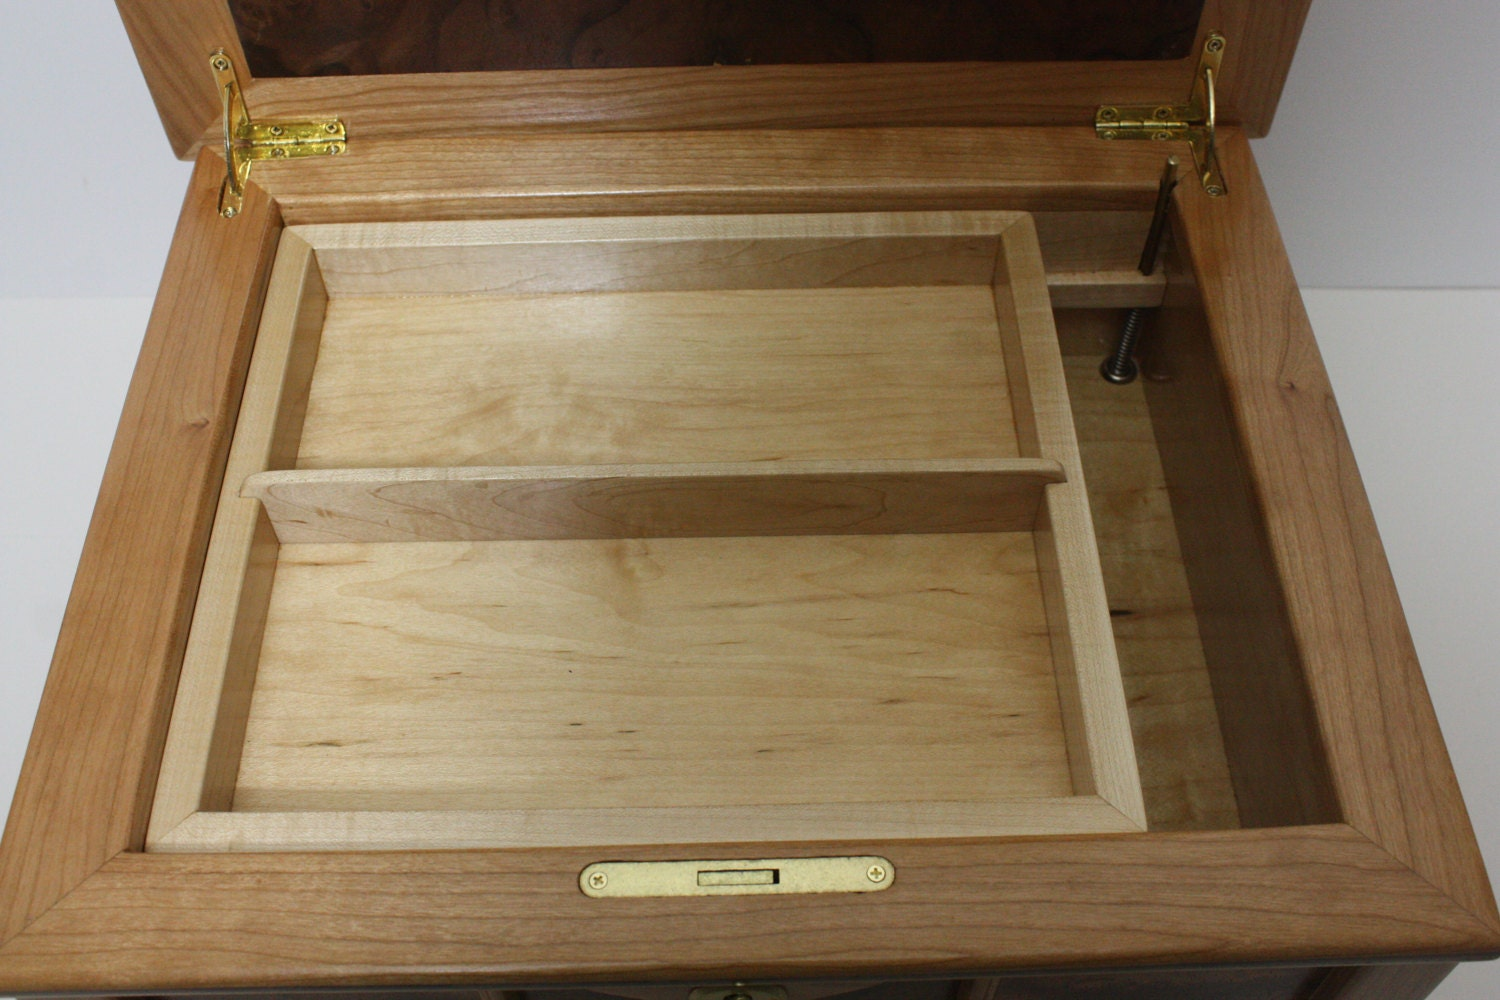 Large handmade box with Lift-out Tray